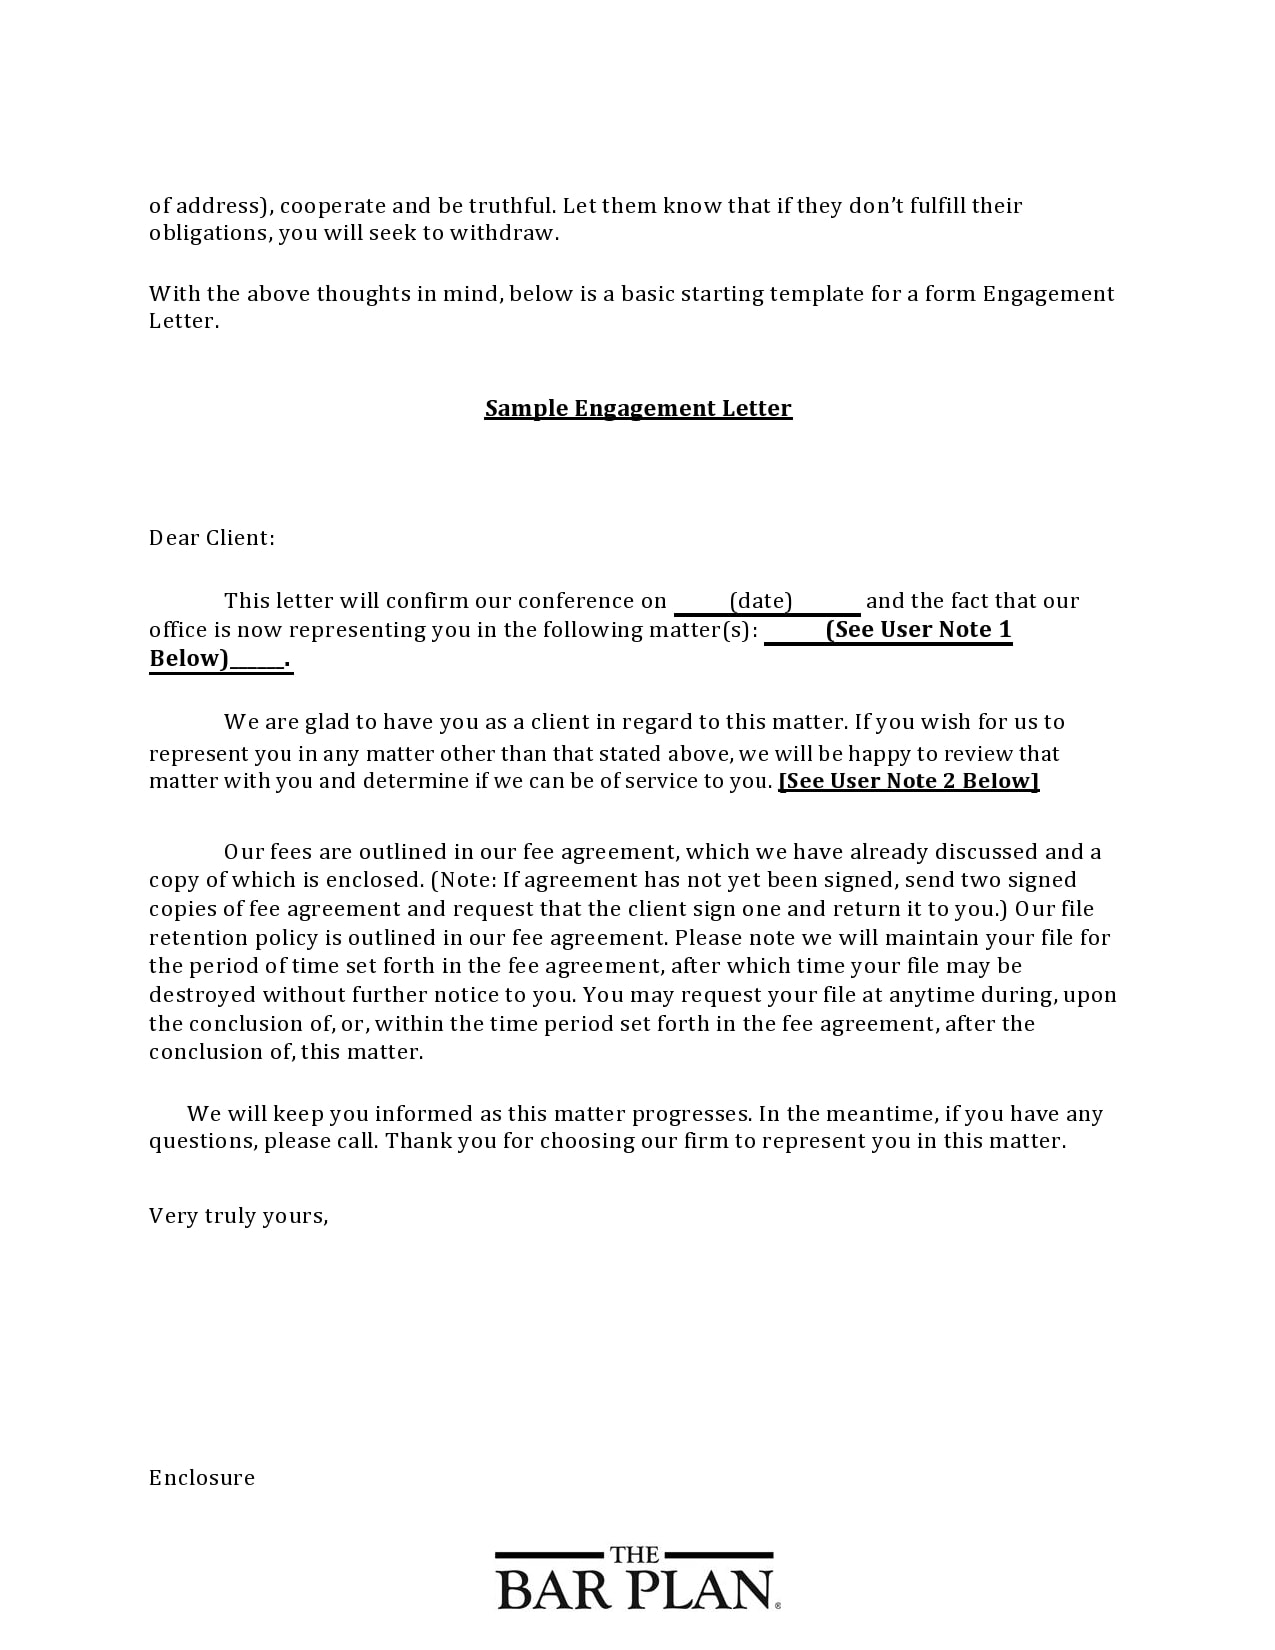 Free engagement letter 01